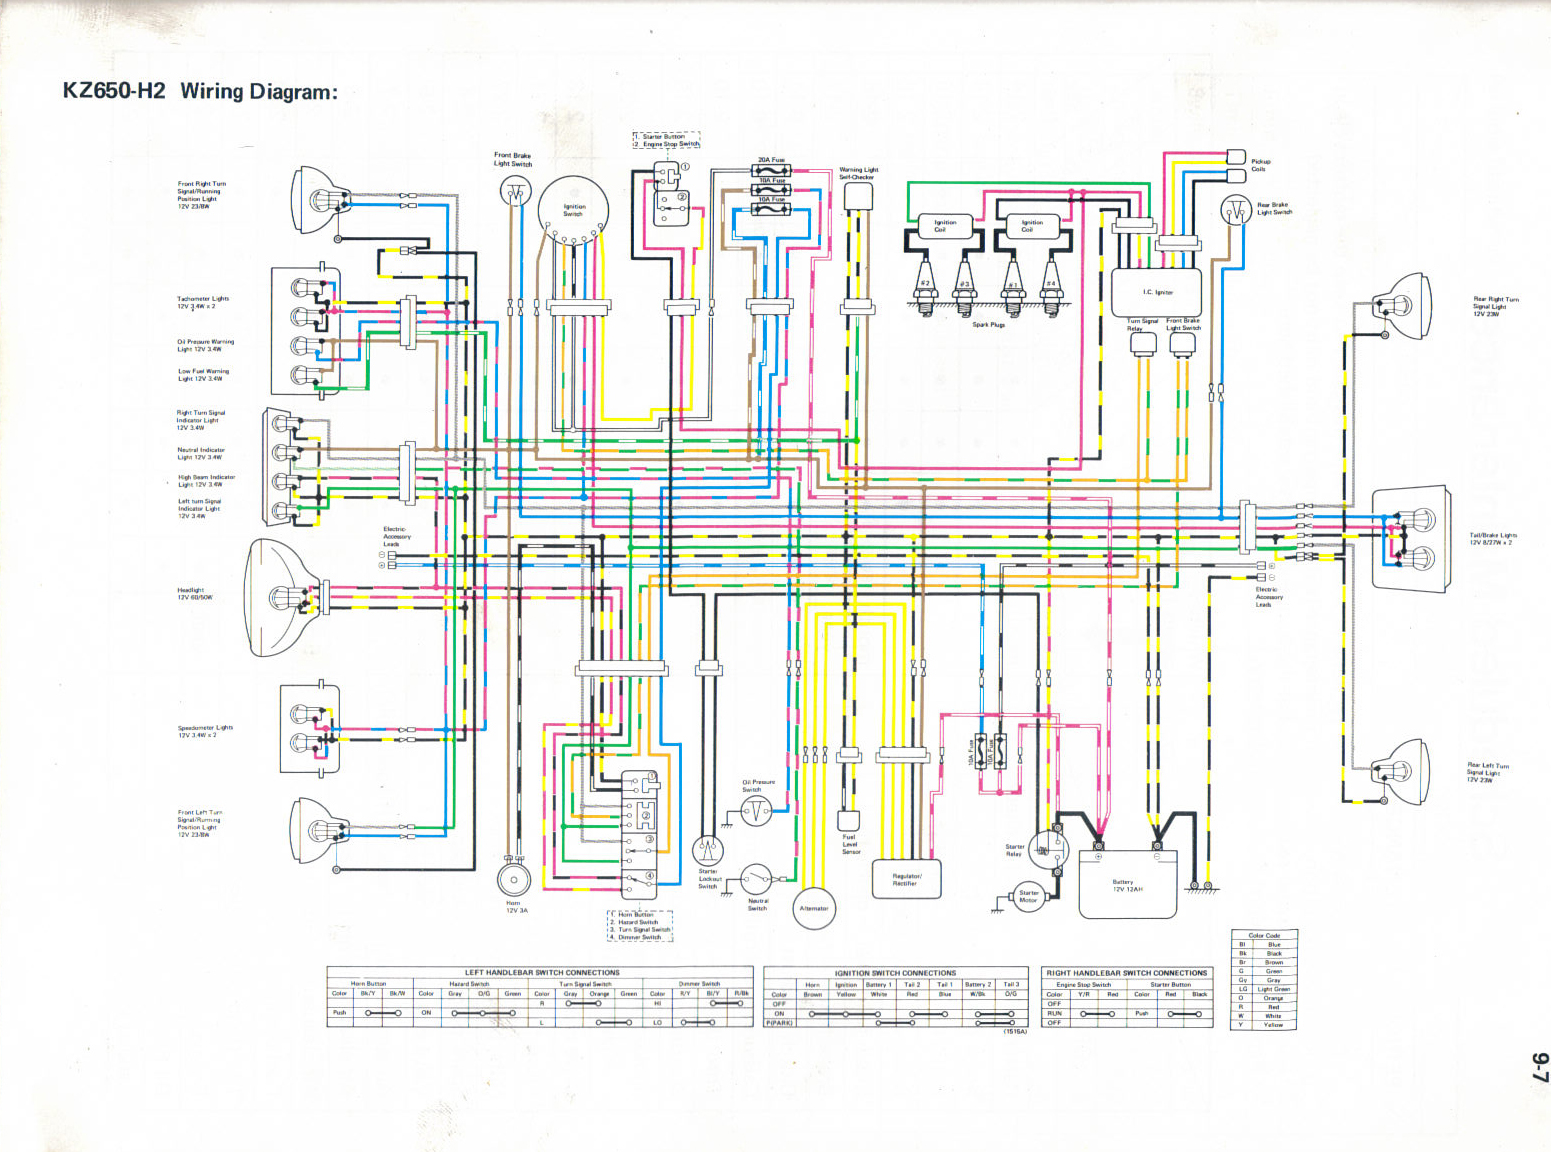 hight resolution of kz650 info wiring diagrams1982 kz650 wiring diagram 2